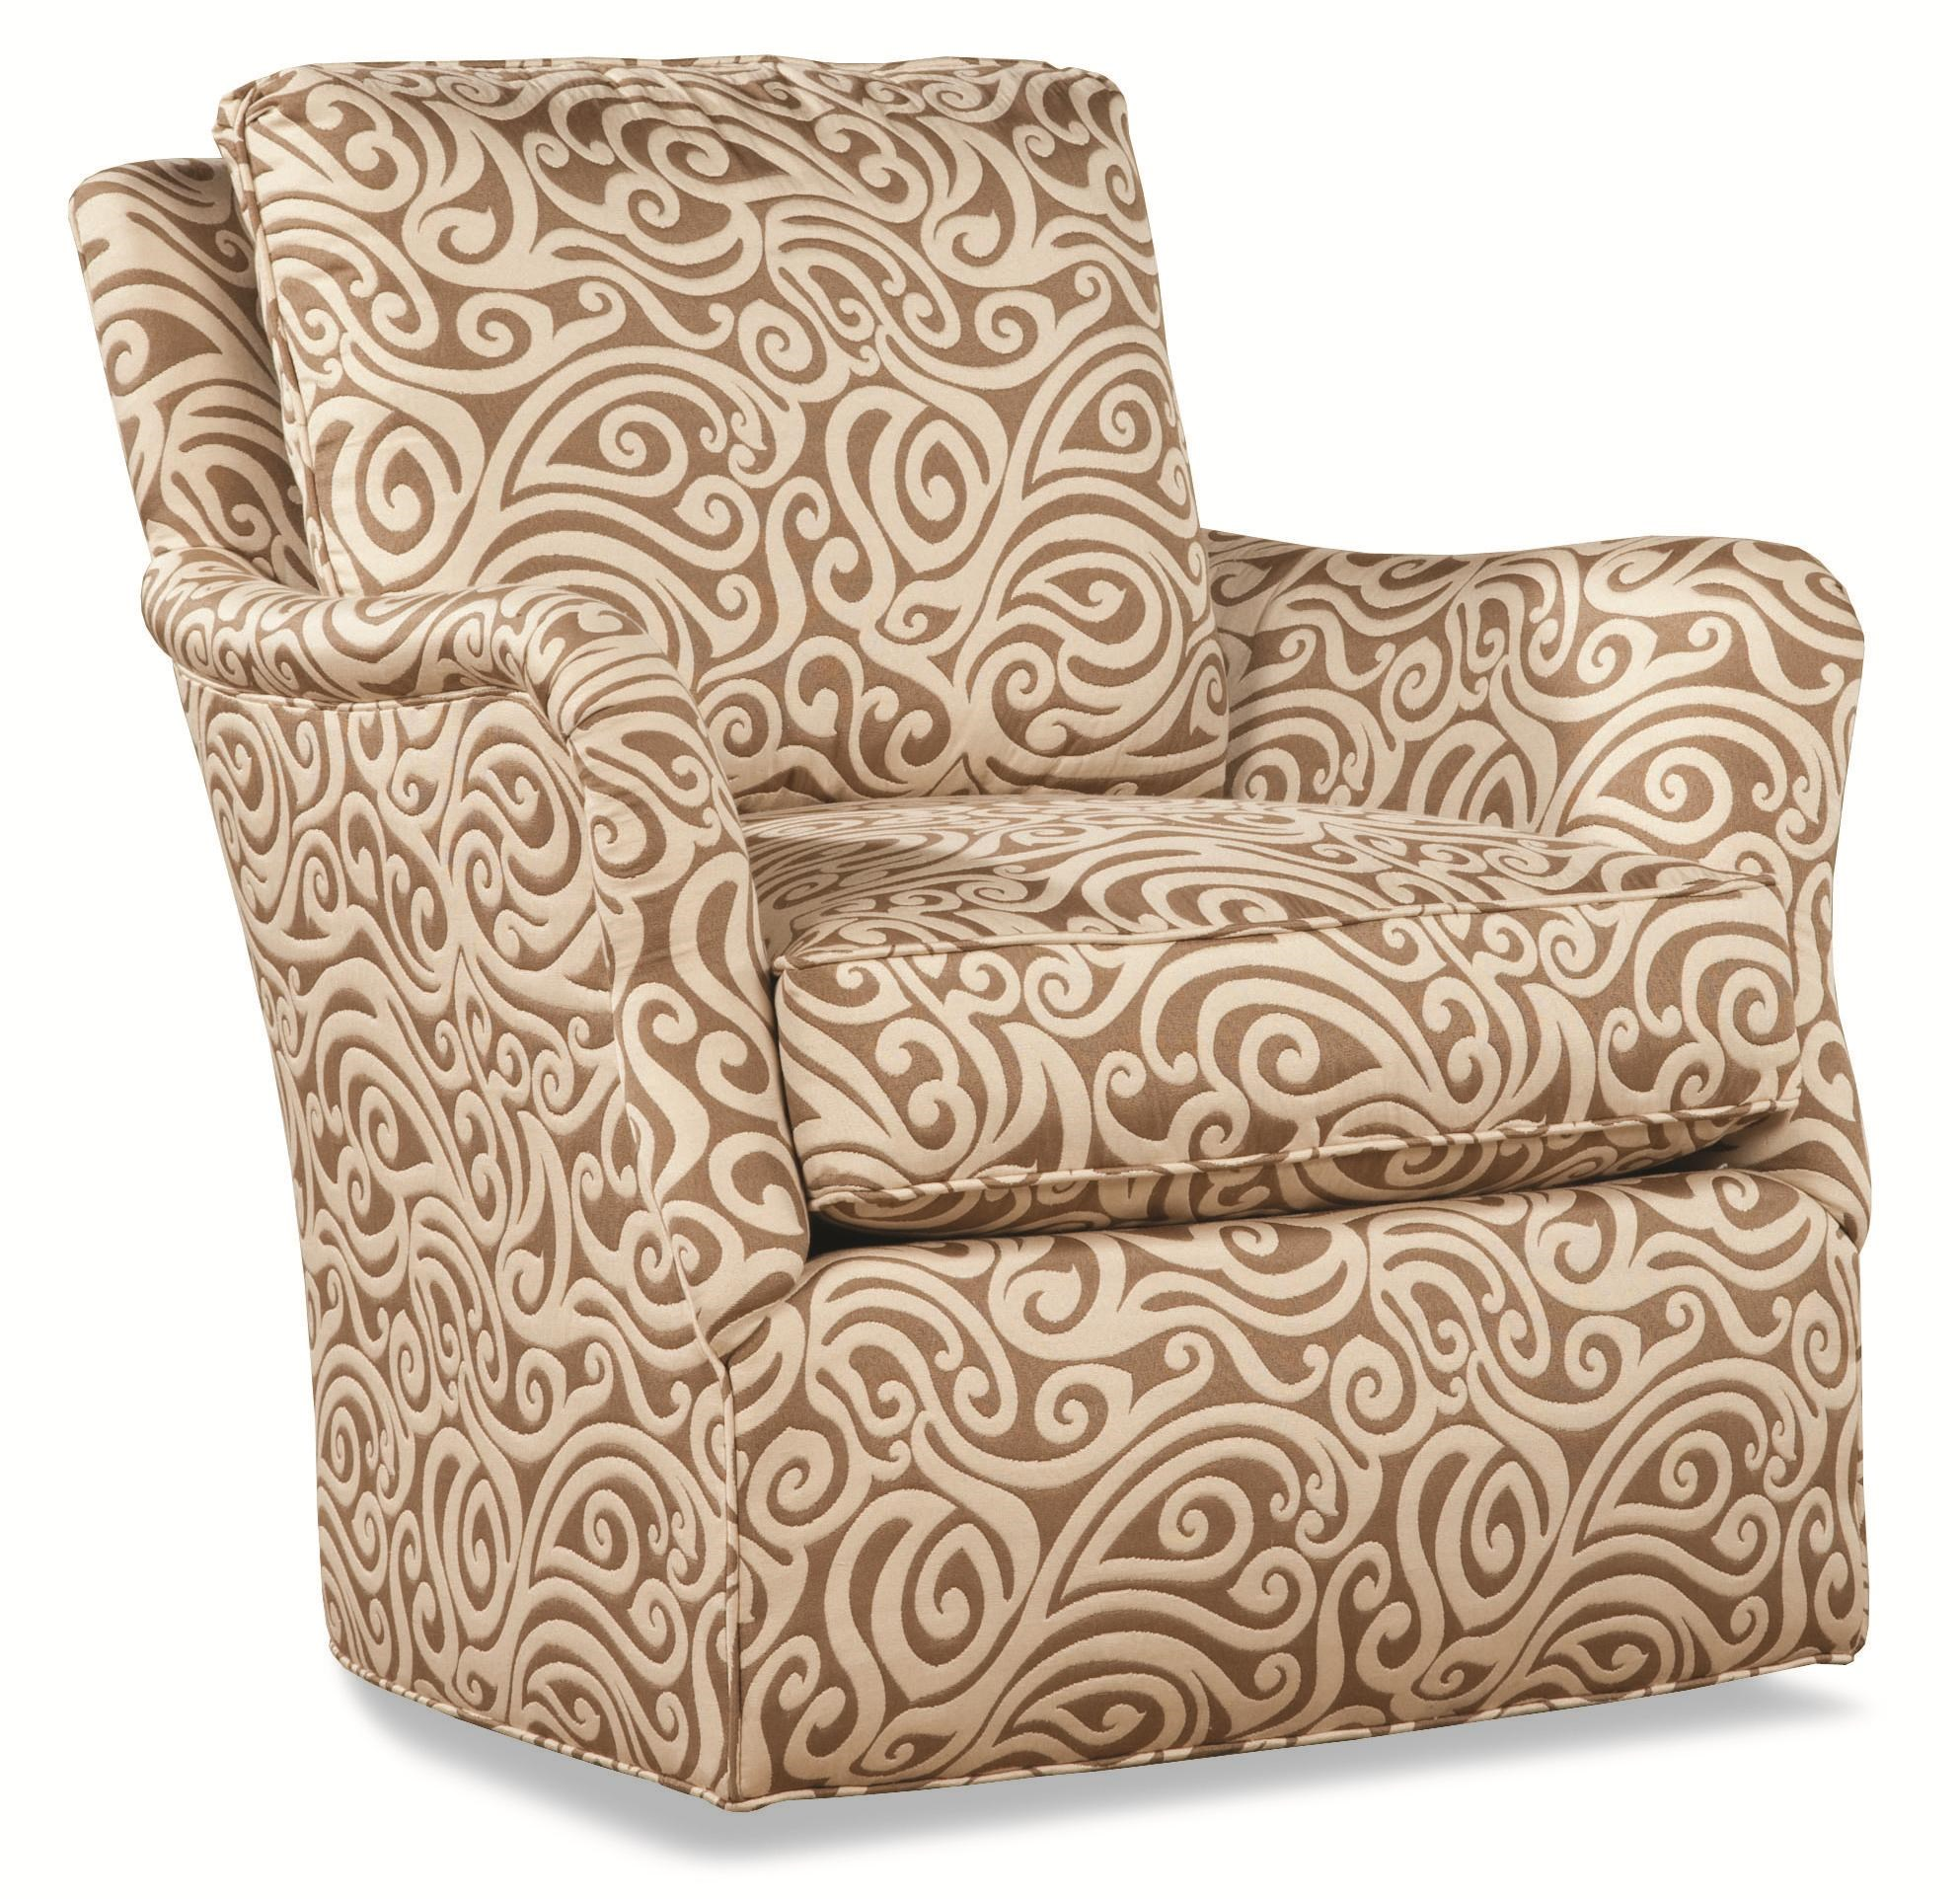 Huntington House Furniture Quality Huntington House 7195 7195 58 Swivel Glider With English Arms